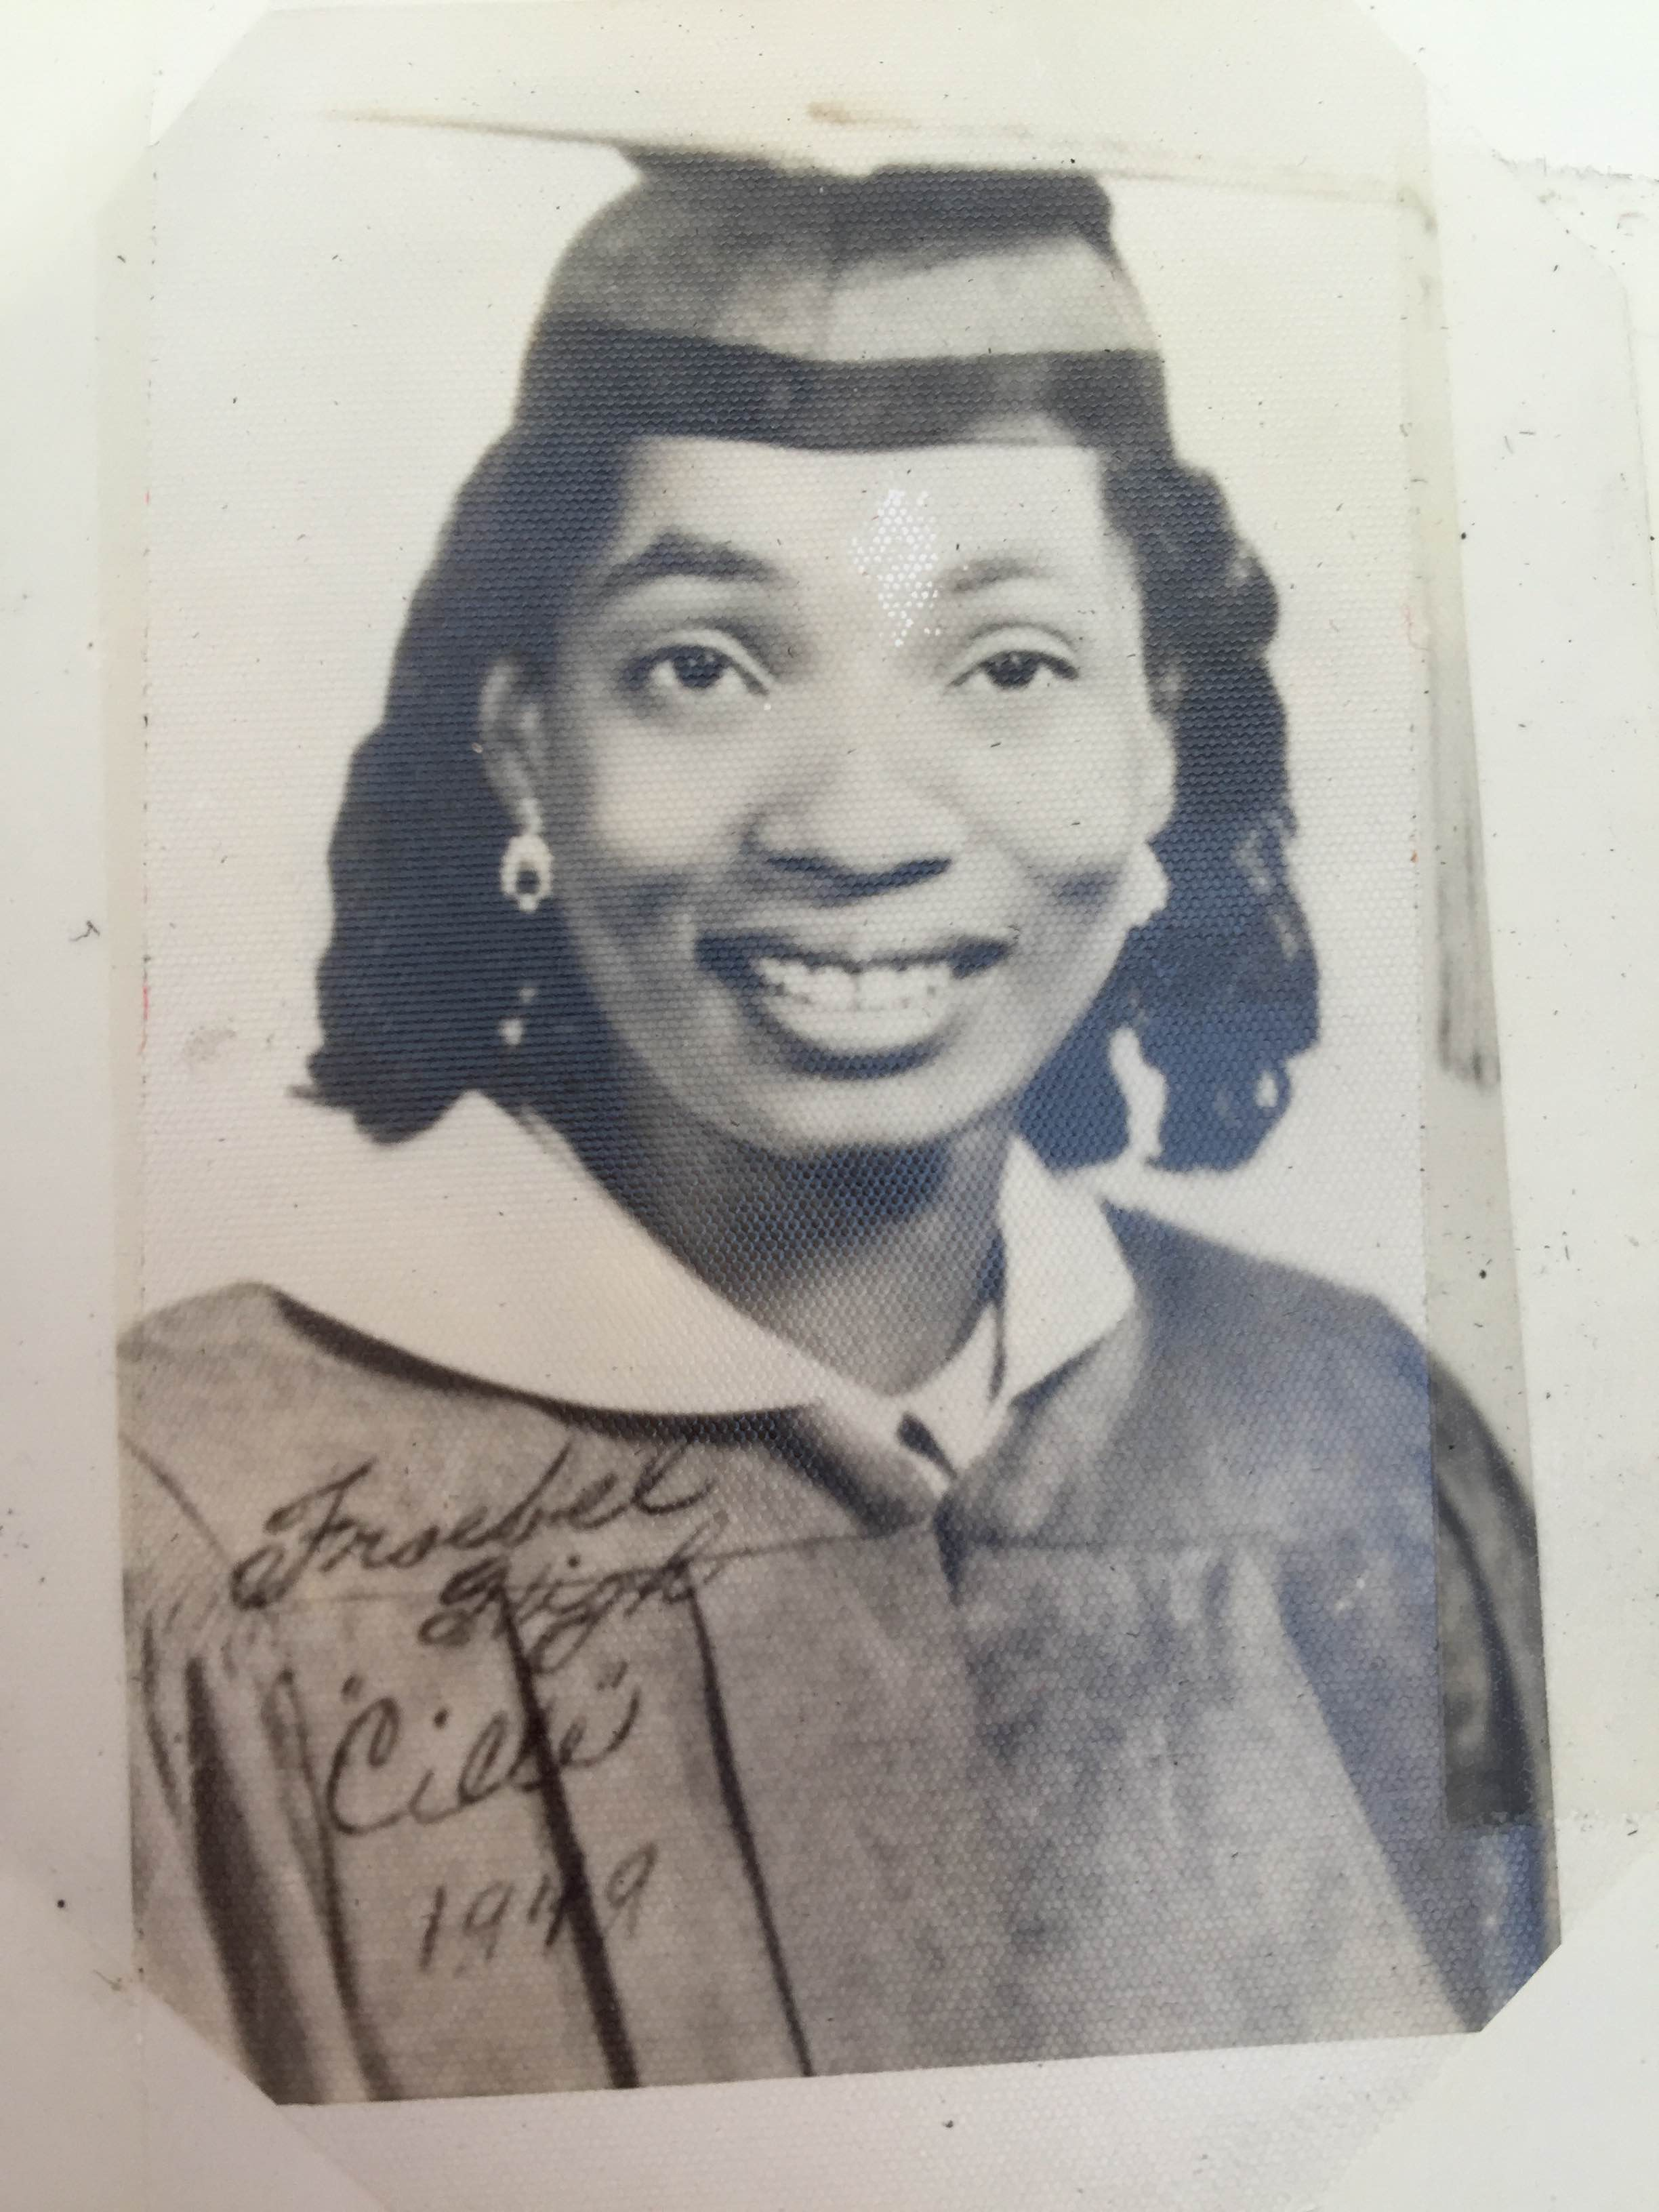 Lucille Bobo, maiden name nee Gause - is pictured in her 1949 Froebel High graduation photo. (Lucille Bobo)